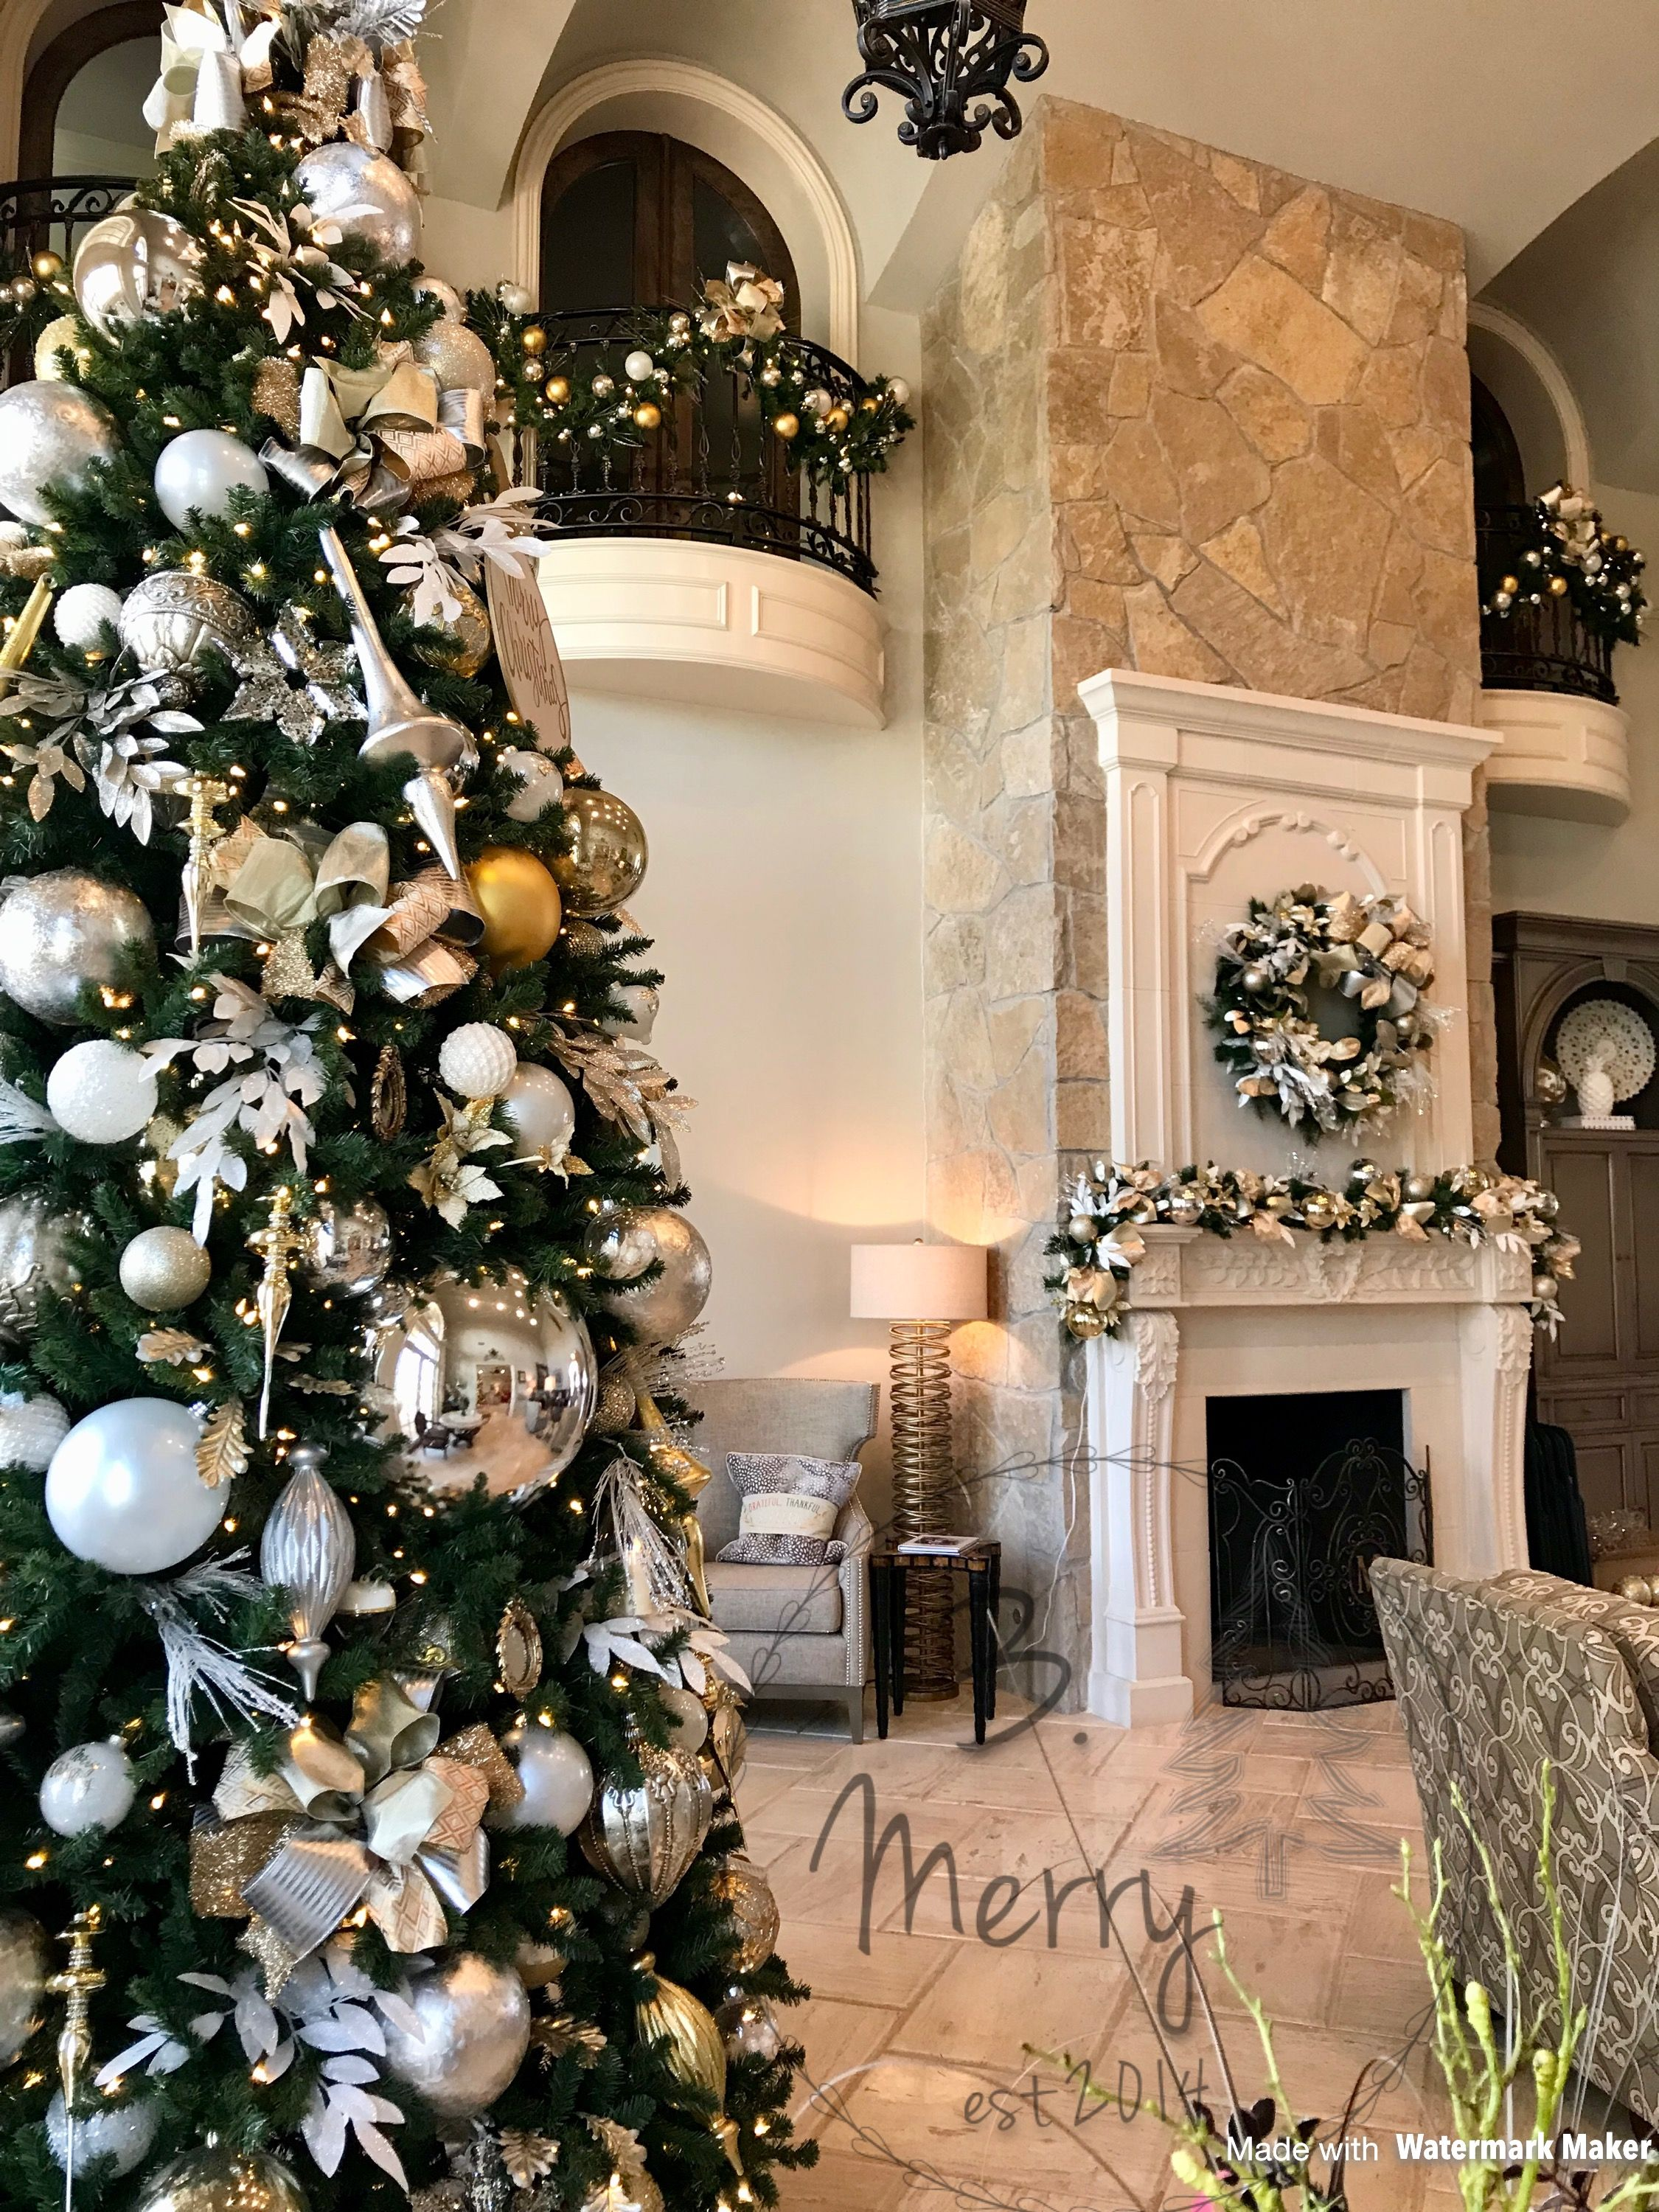 Pin By Mimica On Christmas Time And Winter Wonderland Christmas Interiors Christmas Tree Christmas Aesthetic